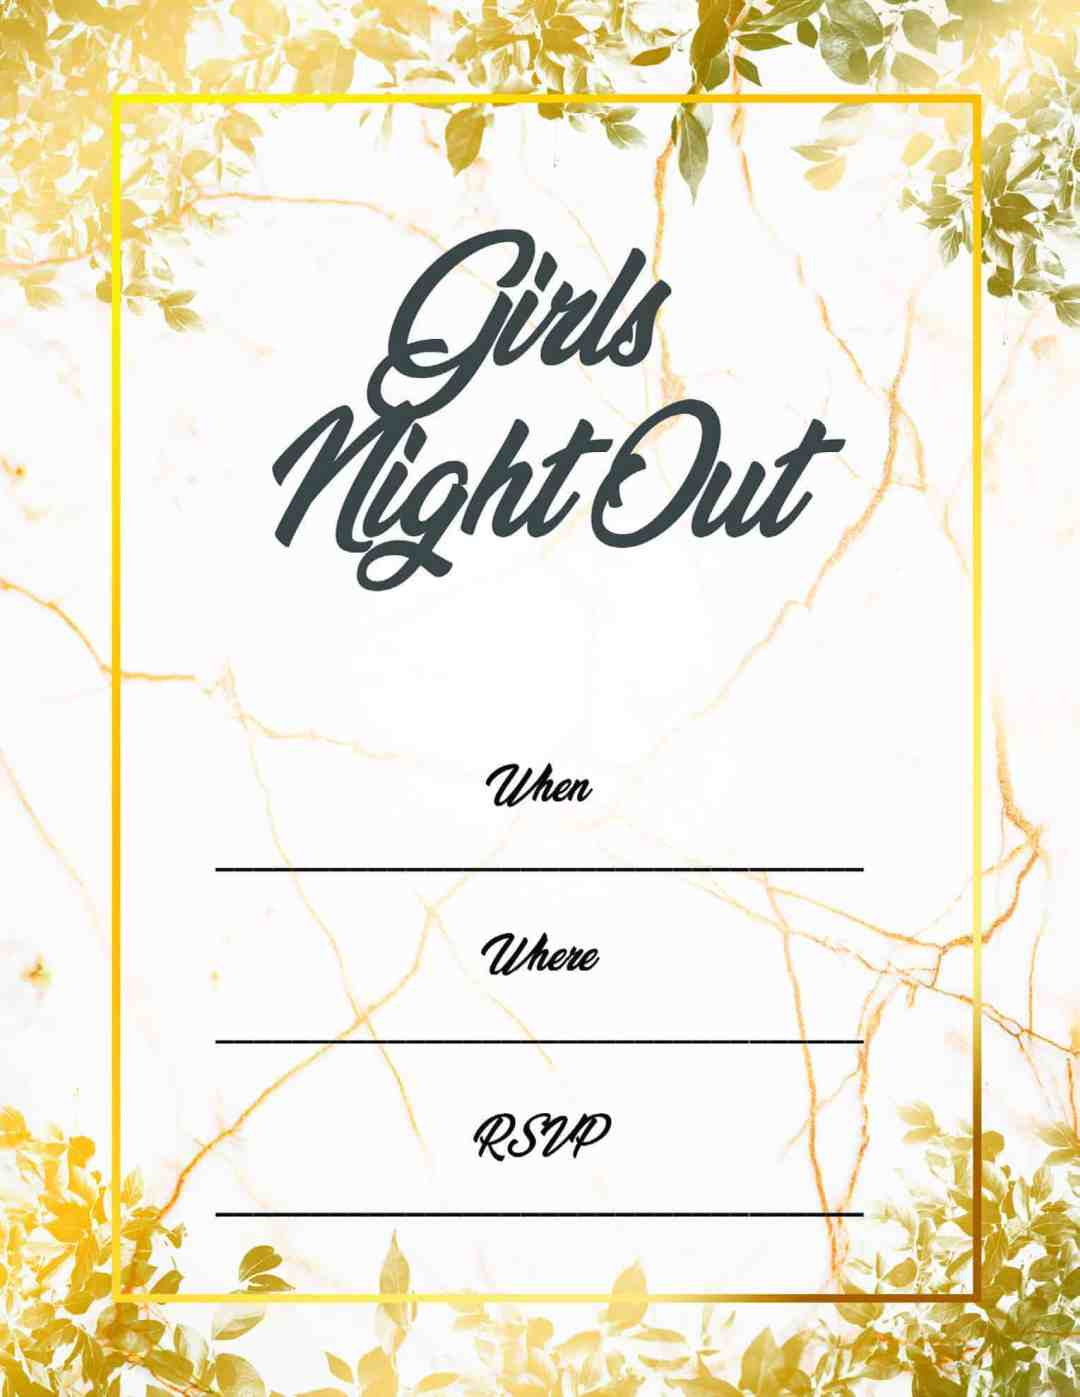 Girls Night Out - Gold and White Design - All Free Invitations